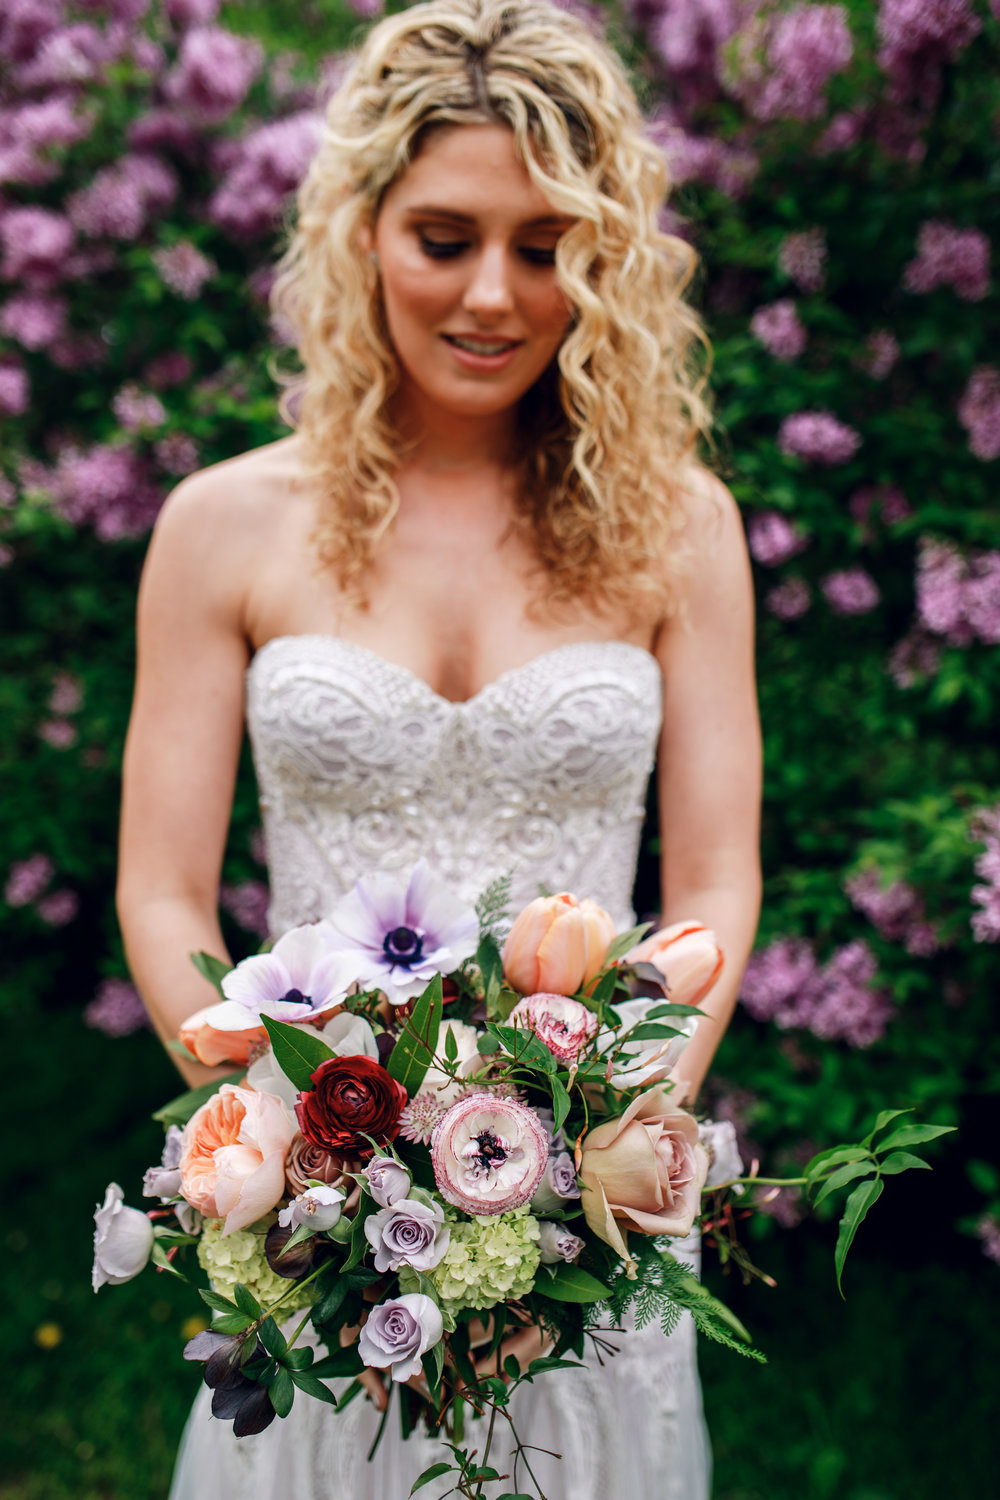 Bridal Bouquet by Fleur Inc at North Pond, Chicago.  Photo by Tuan B & Co, Planning by Bride + Joy Events